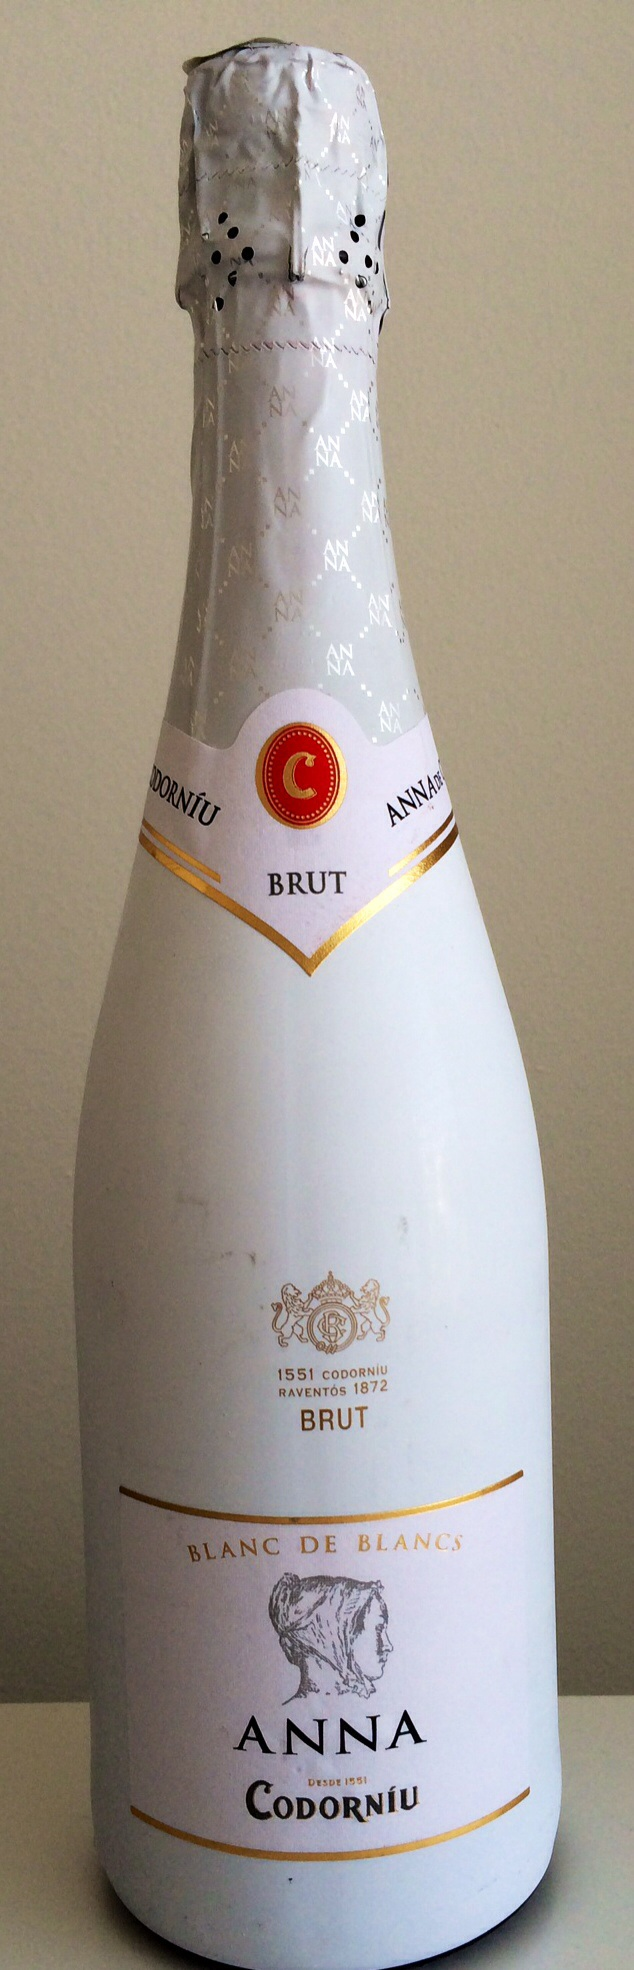 Wine review anna de codorniu brut blanc de blancs for Belle jardin blanc de blancs